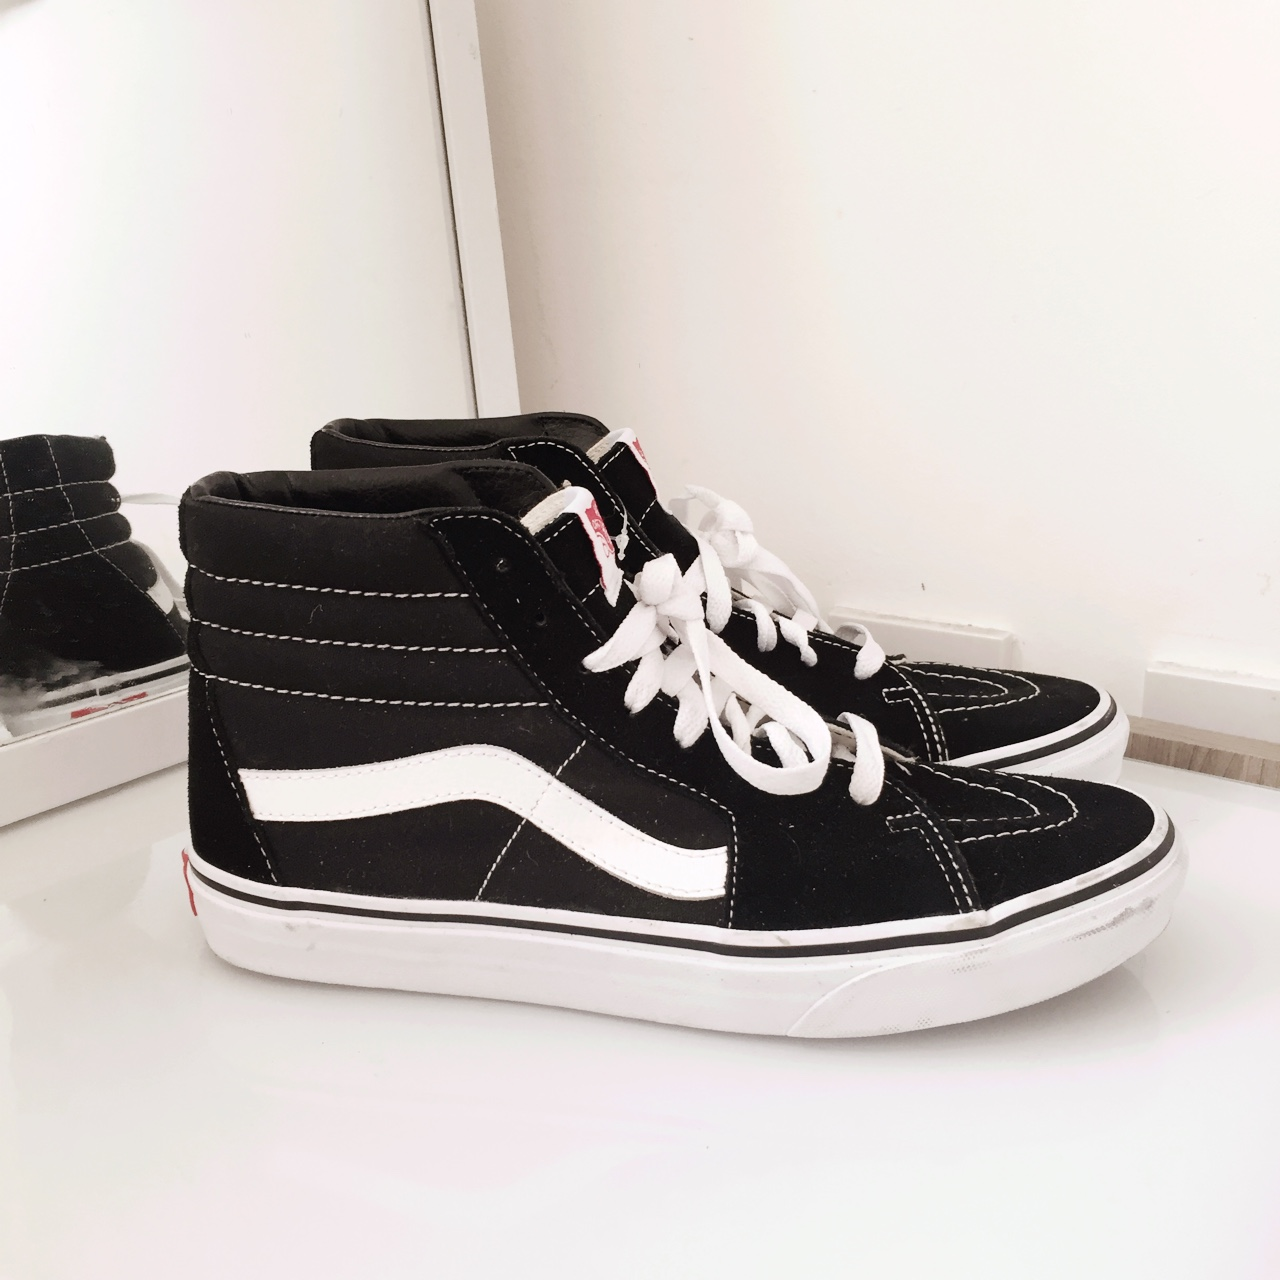 Vans Old Skool High Top Trainers, Black